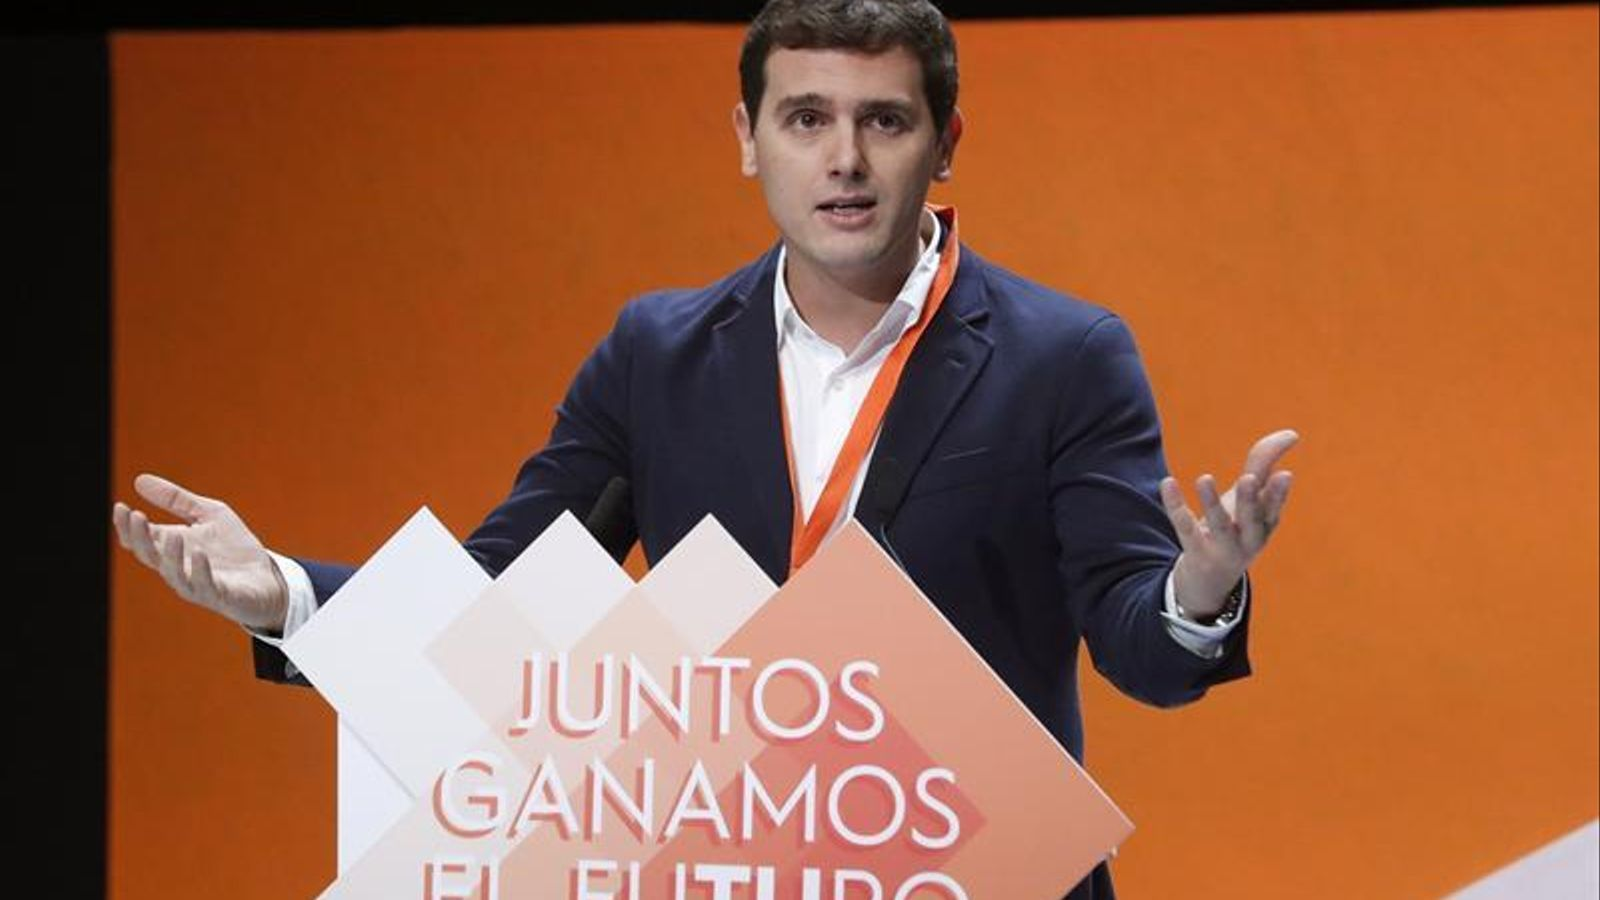 Albert Rivera / EFE